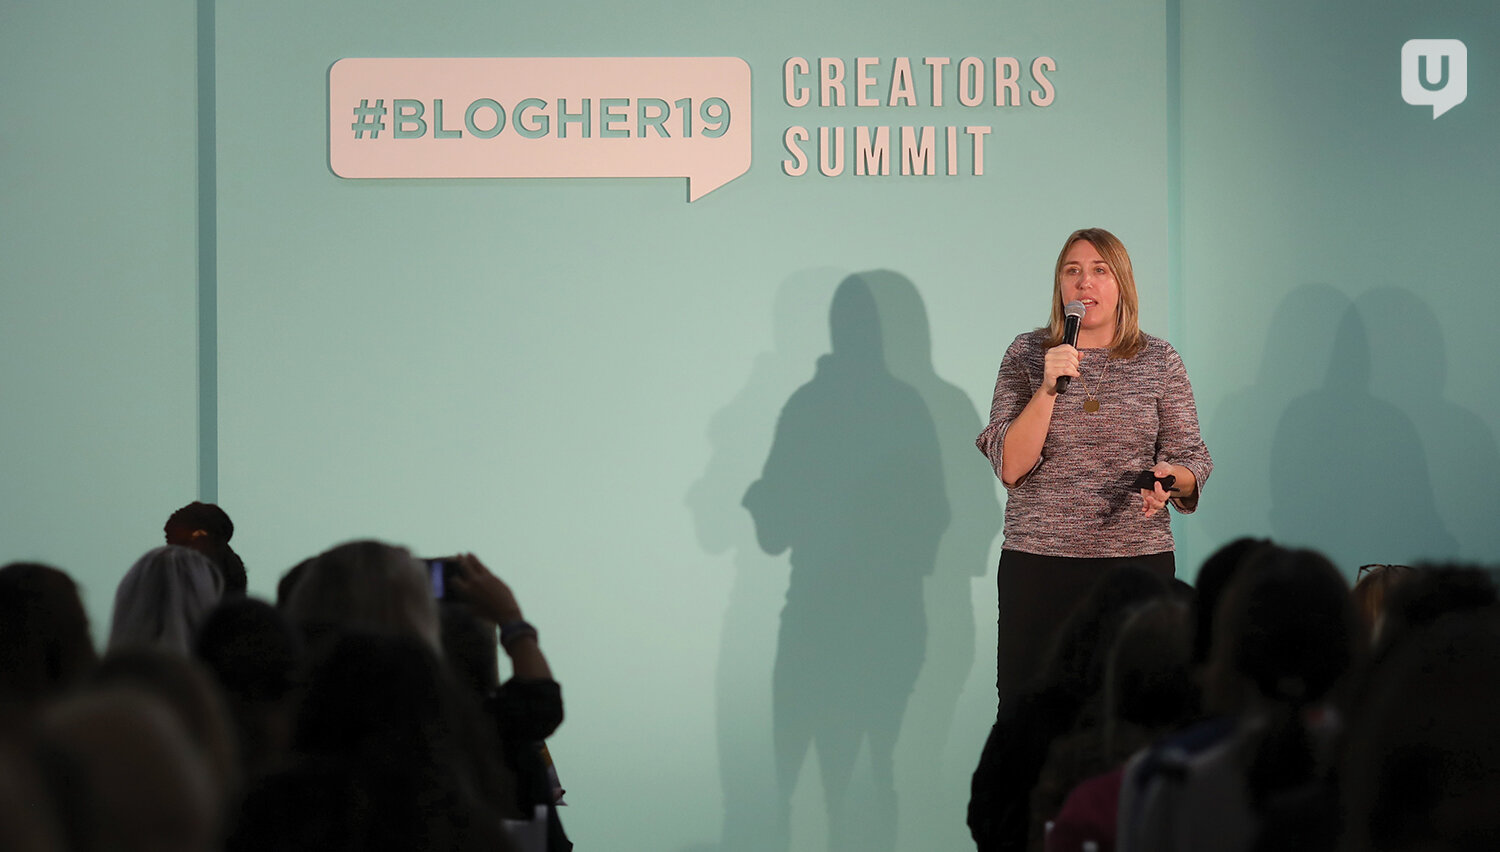 how to complete an seo audit - Our SEO Lunch & Learn was packed at #BlogHer19 Creators Summit! SHE Media's Director of SEO showed our attendees the steps it takes to fully audit your website for SEO. Read the recap below!